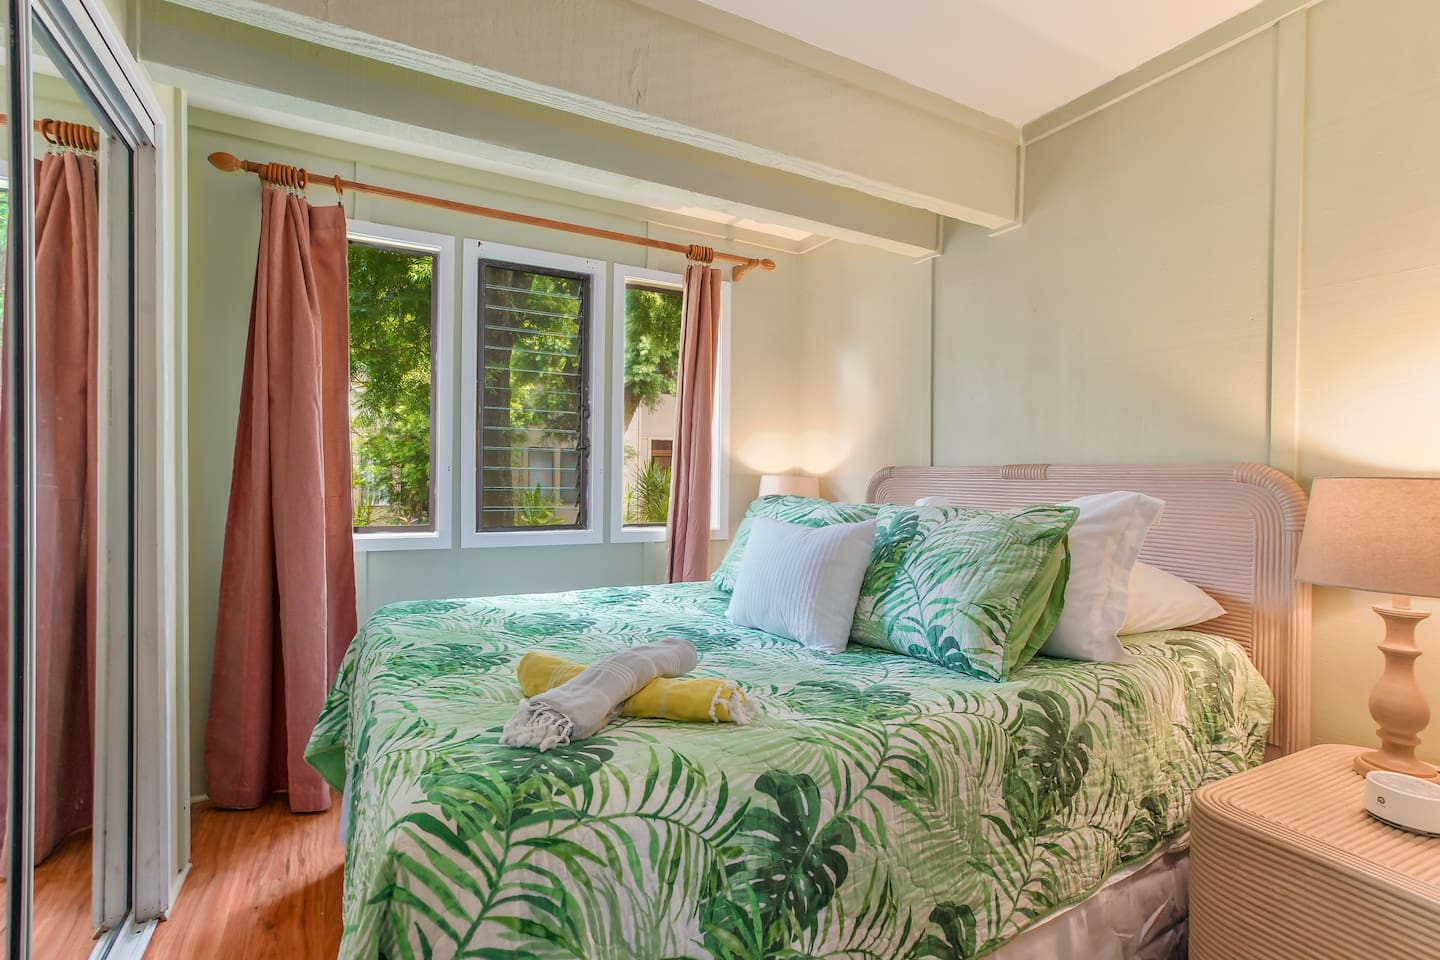 Island-style living: There are continuous ocean breezes and lush gardens right outside your window.